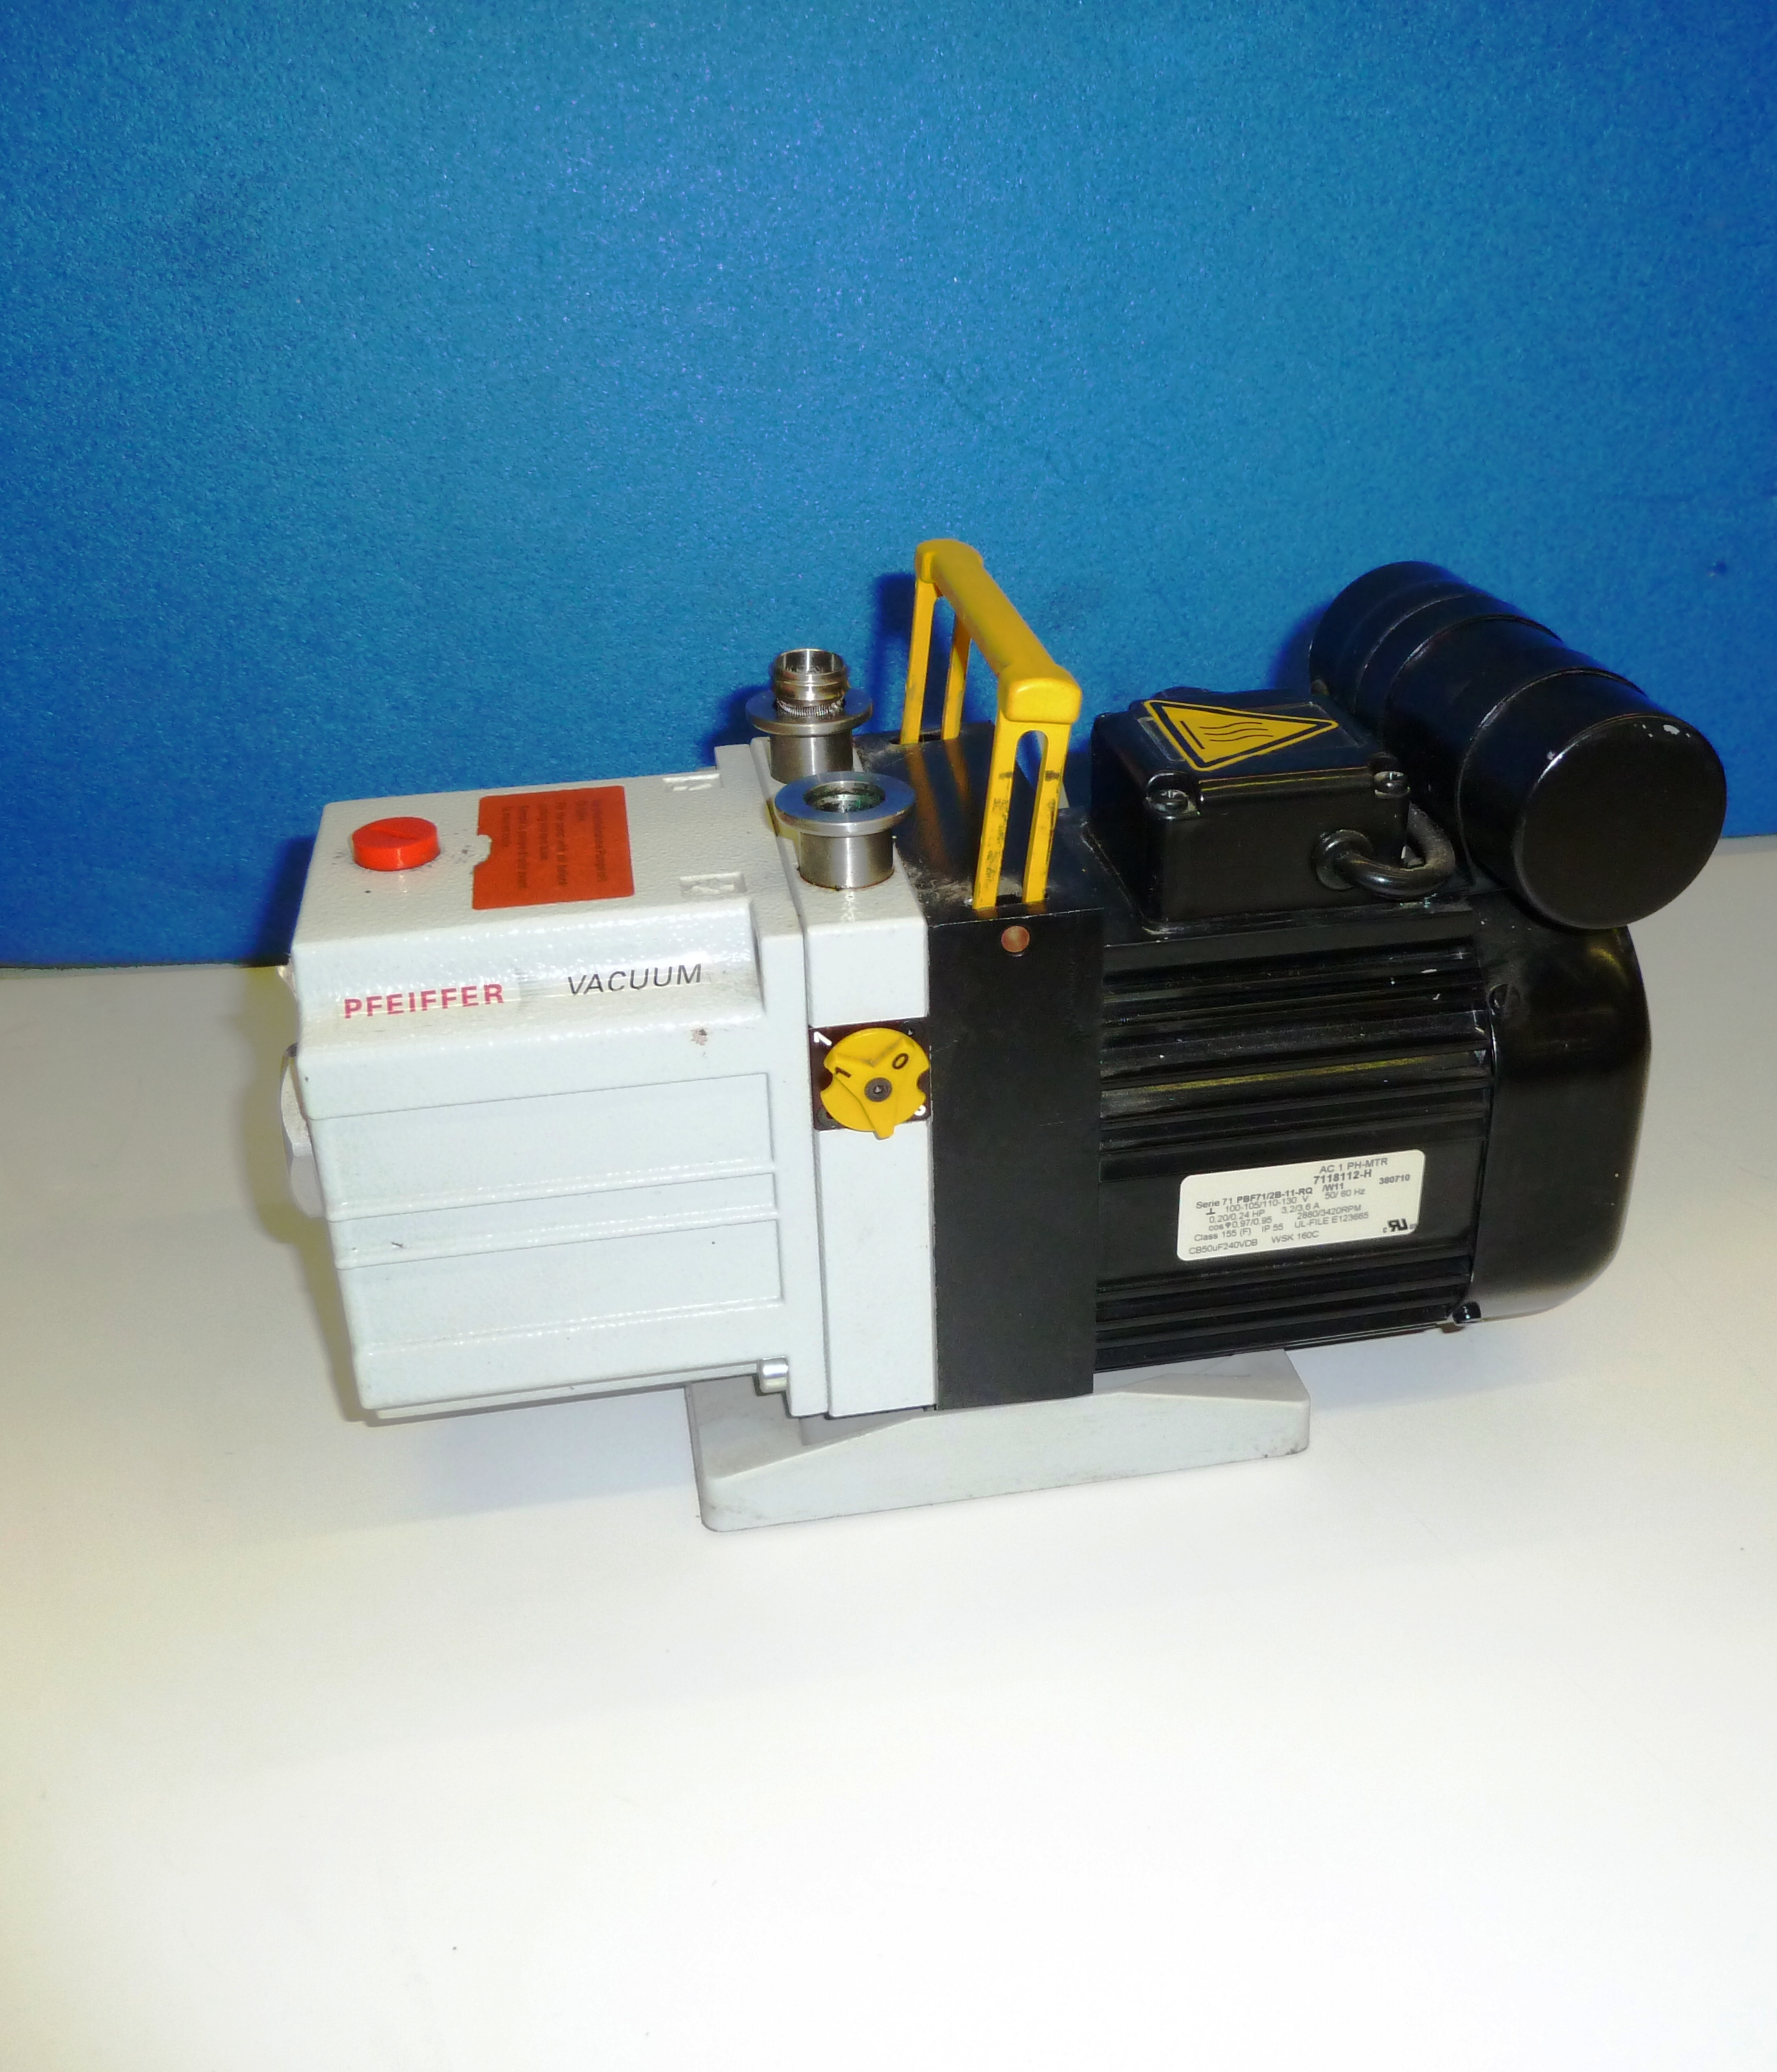 PFEIFFER VACUUM PUMP - Click Image to Close